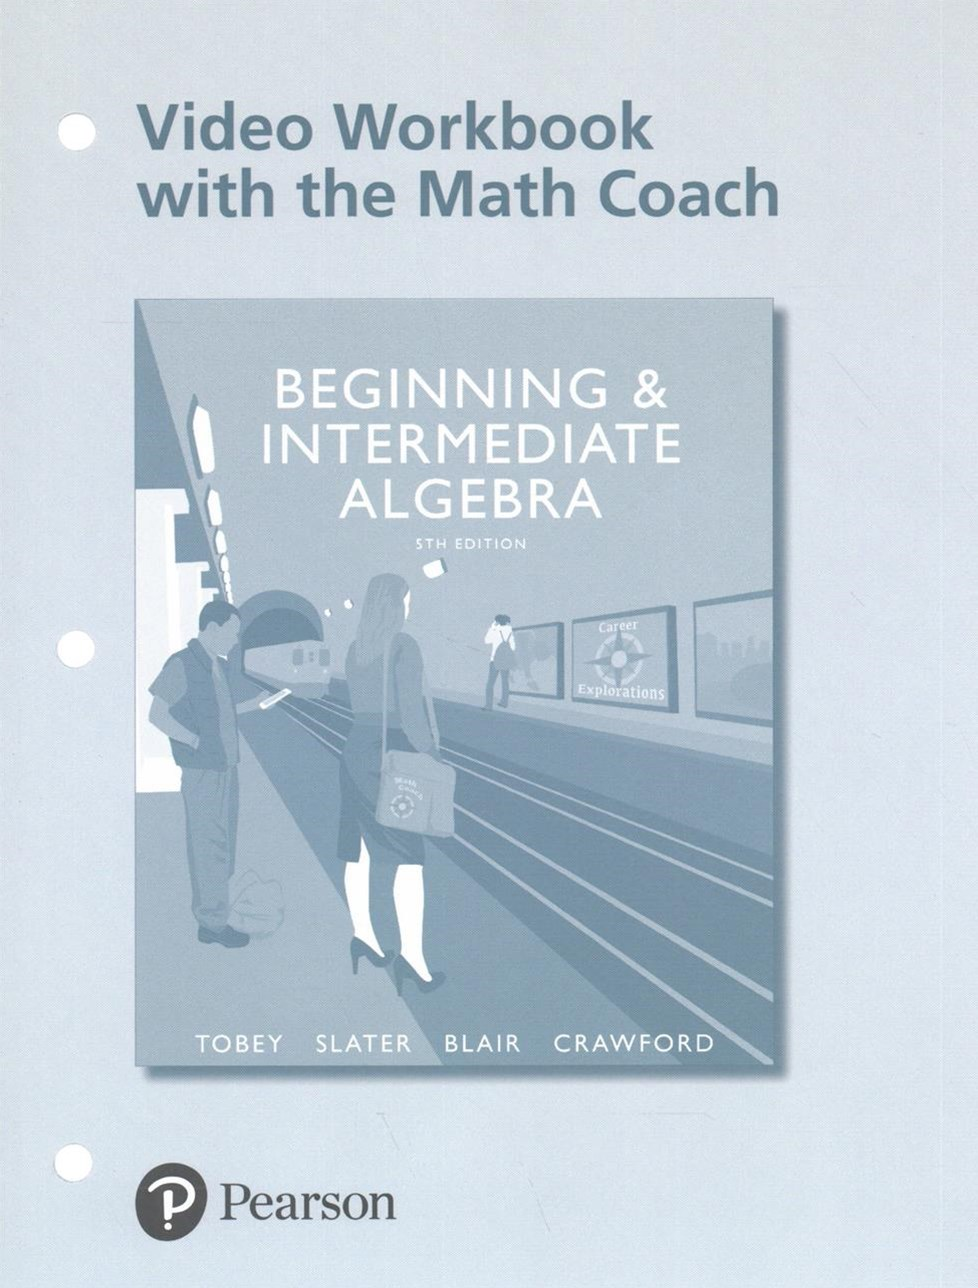 Video Worksheets with the Math Coach for Beginning and Intermediate Algebra